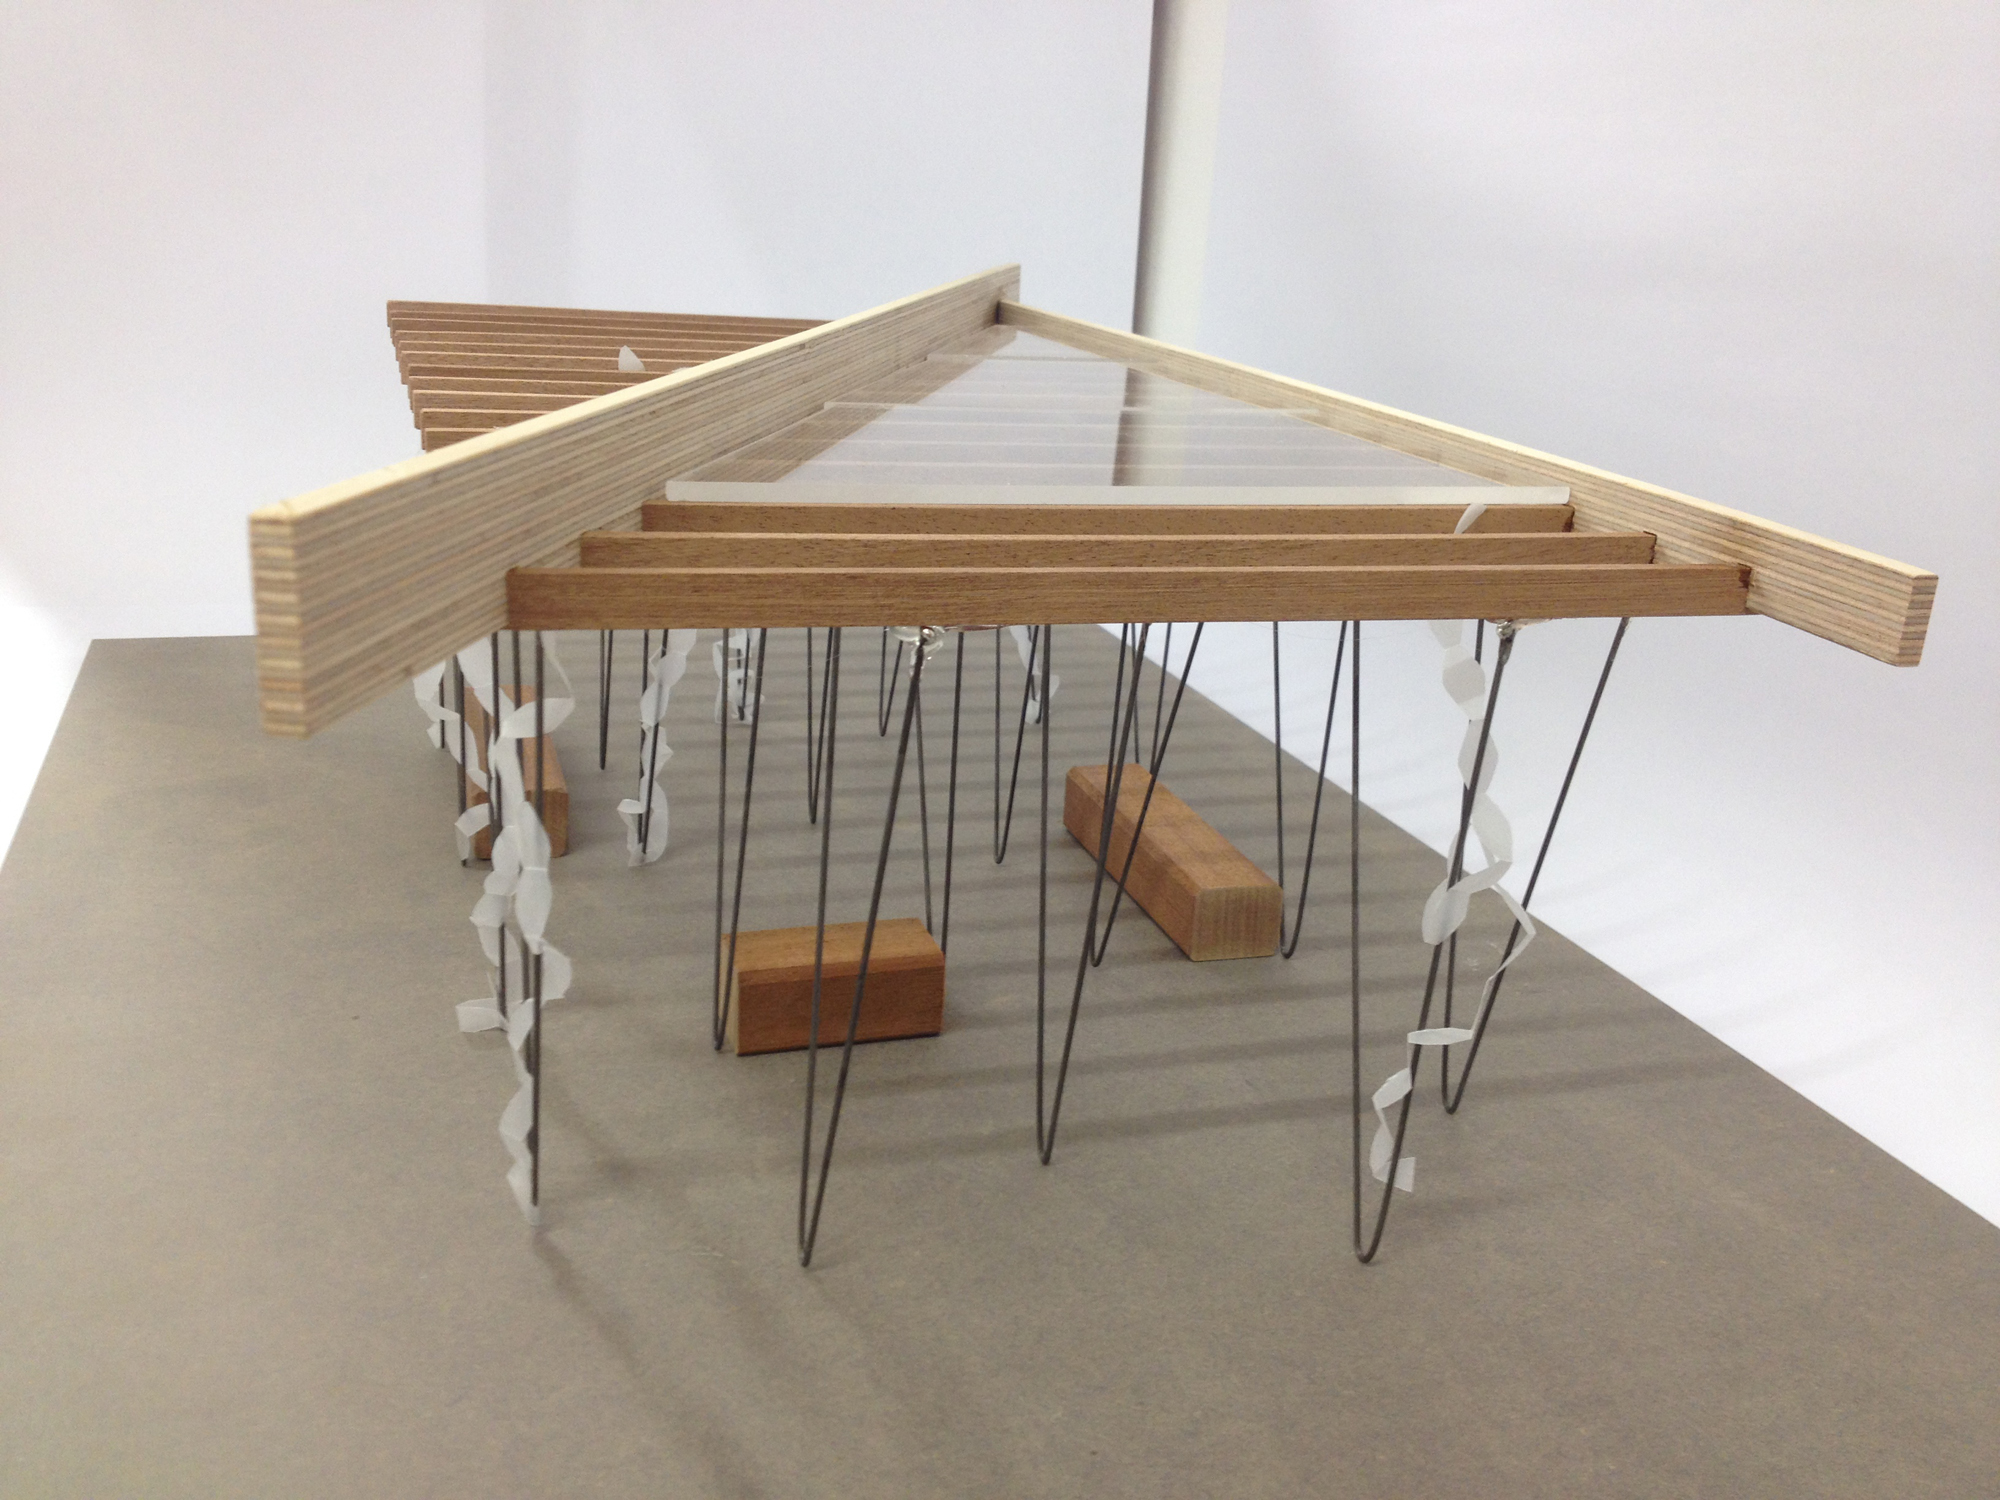 1:20 model of pavilion – view looking down onto roof